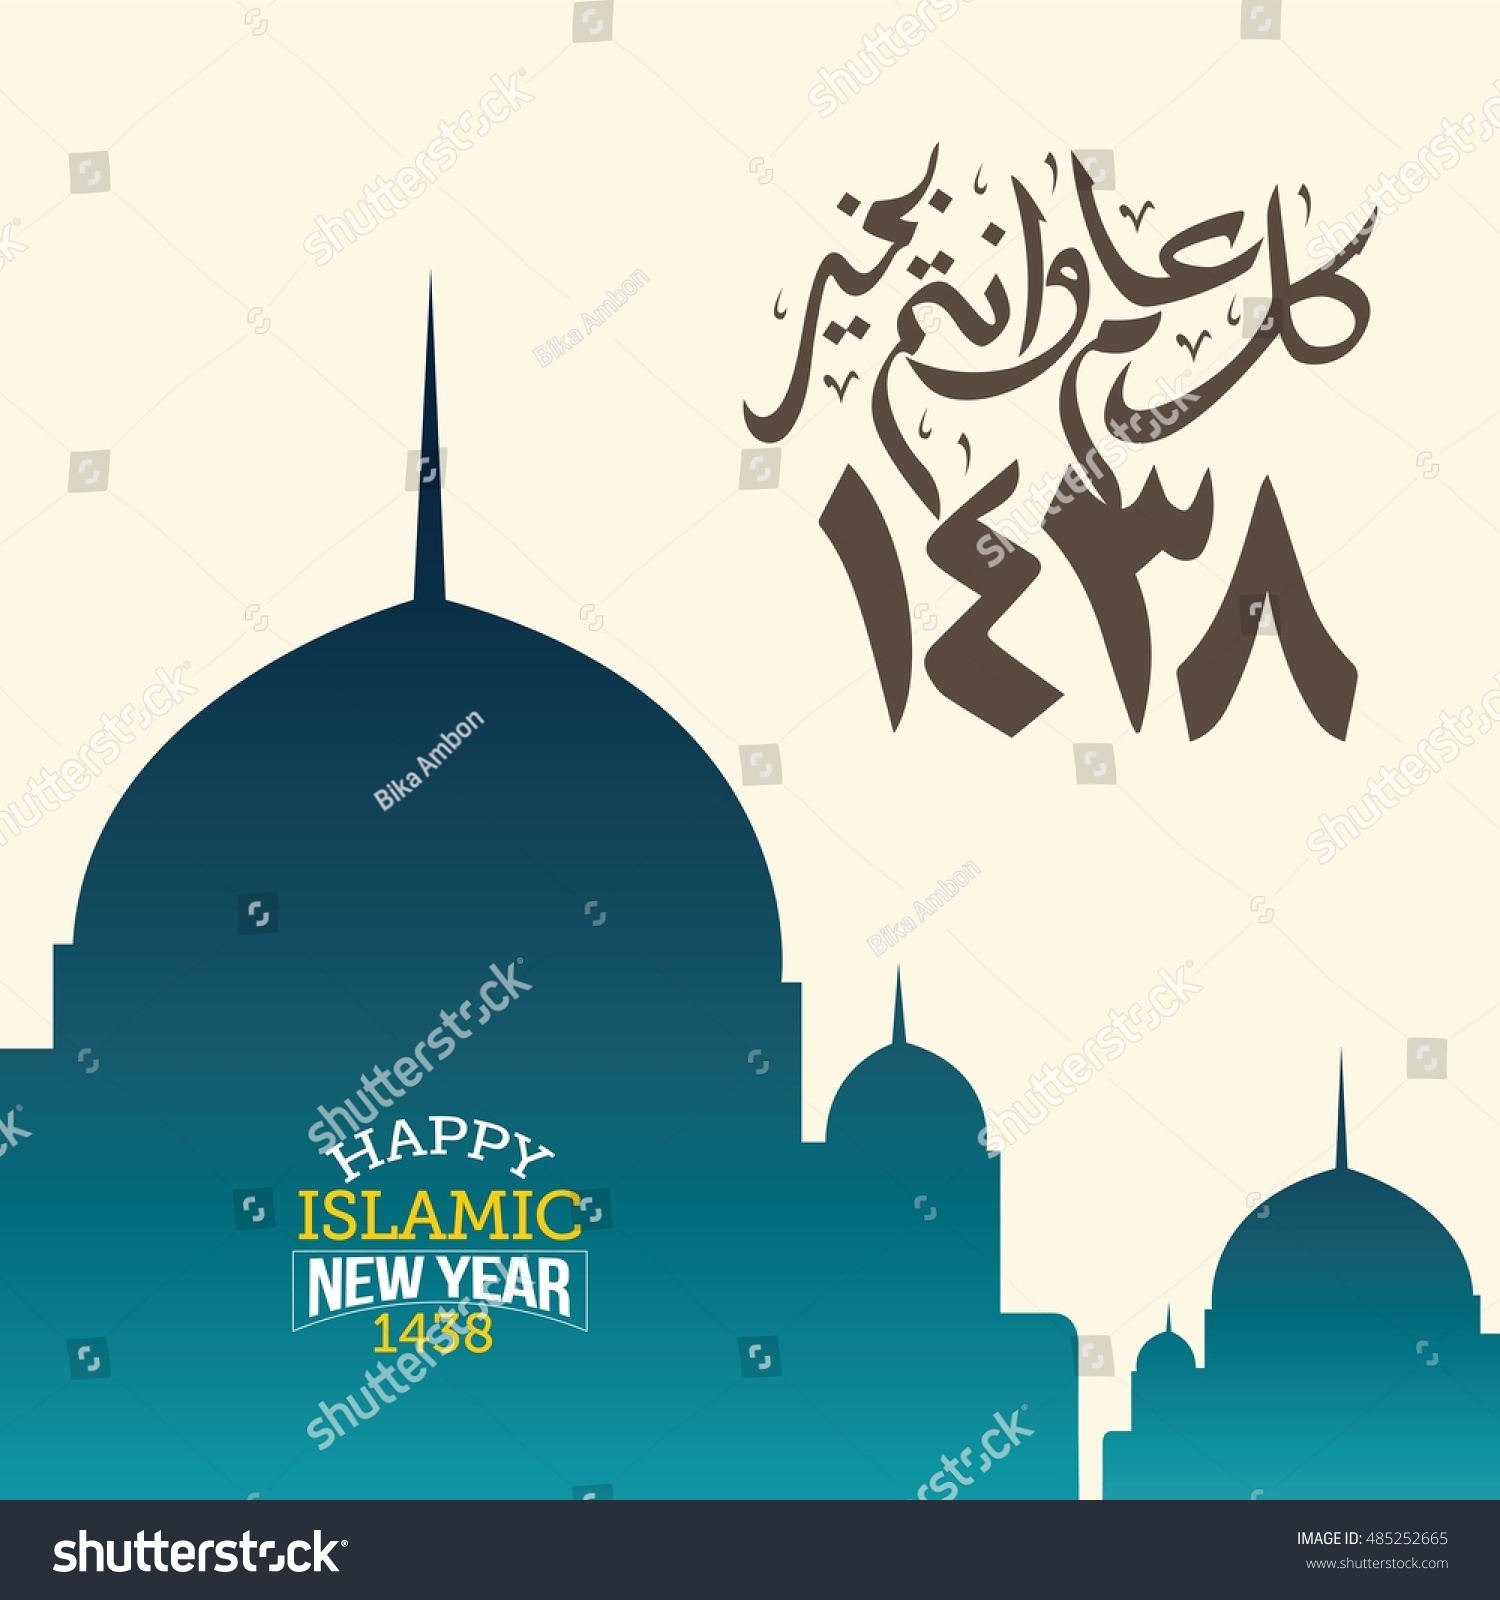 happy new Hijri year 1438 happy new year for all Muslim community Happy Islamic New Year Vector Illustration Great for greeting card poster and banner